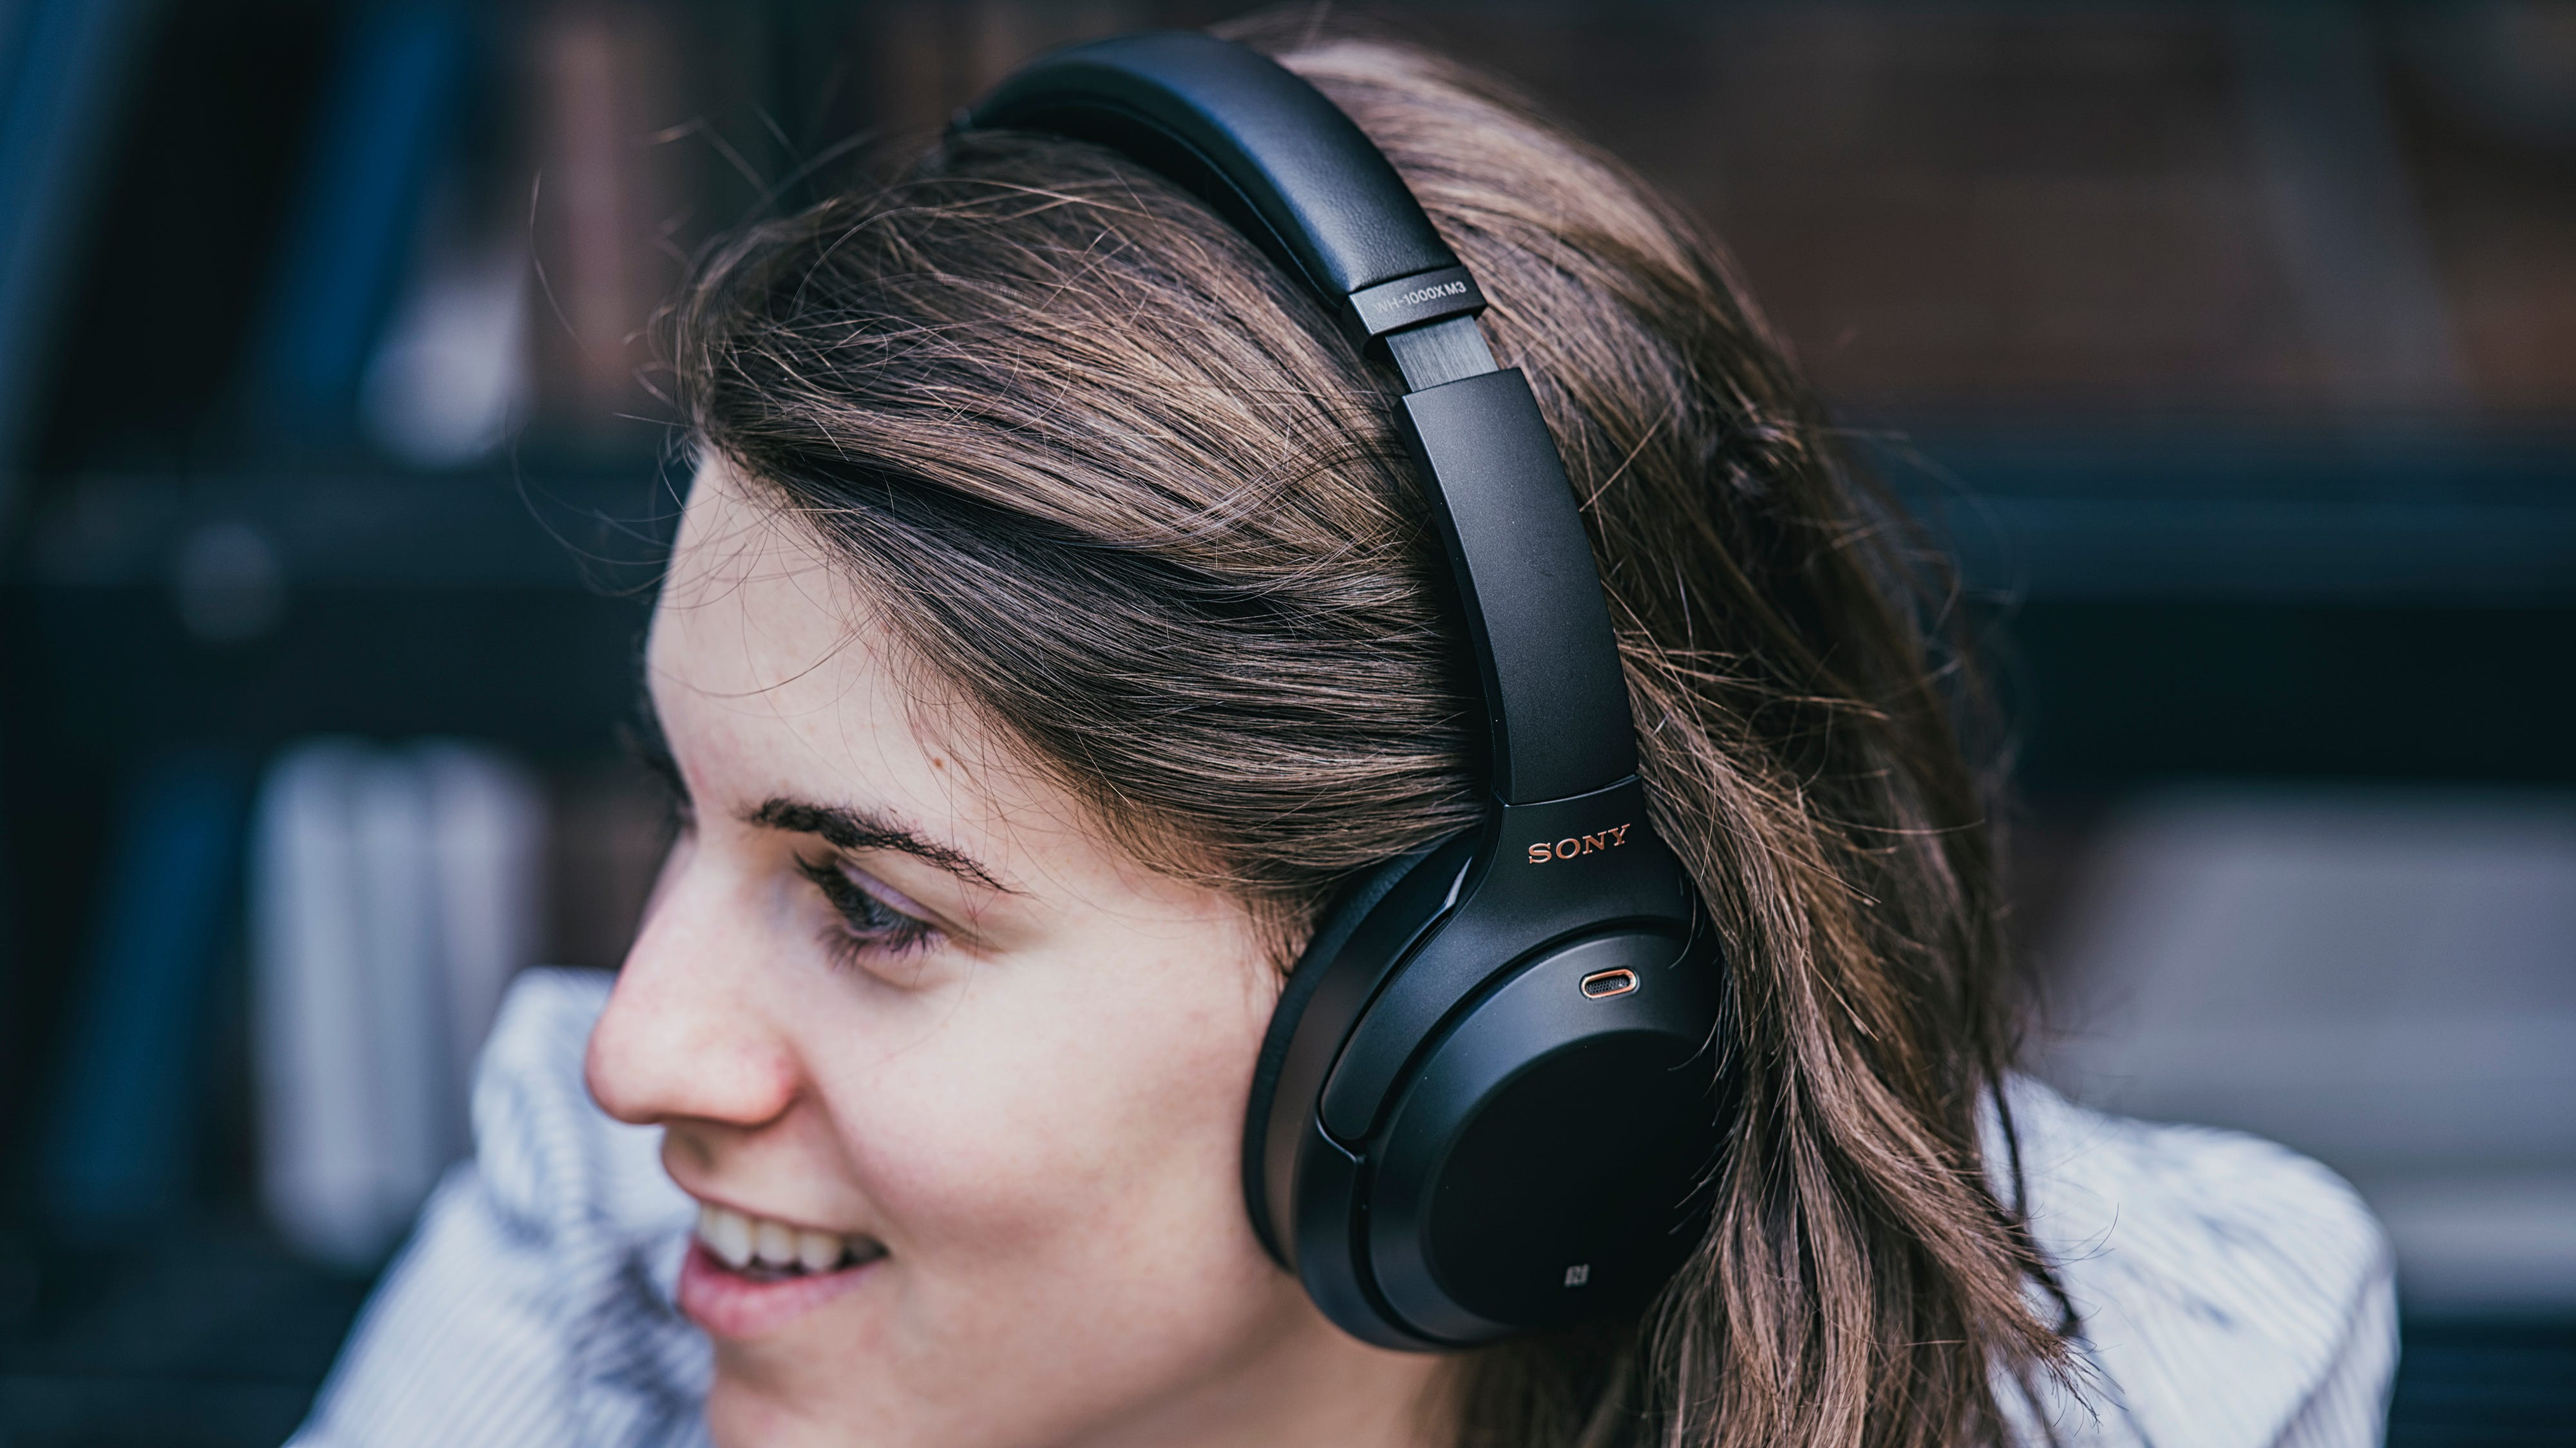 Sony s flawless noise-canceling headphones are $100 off—but not for long